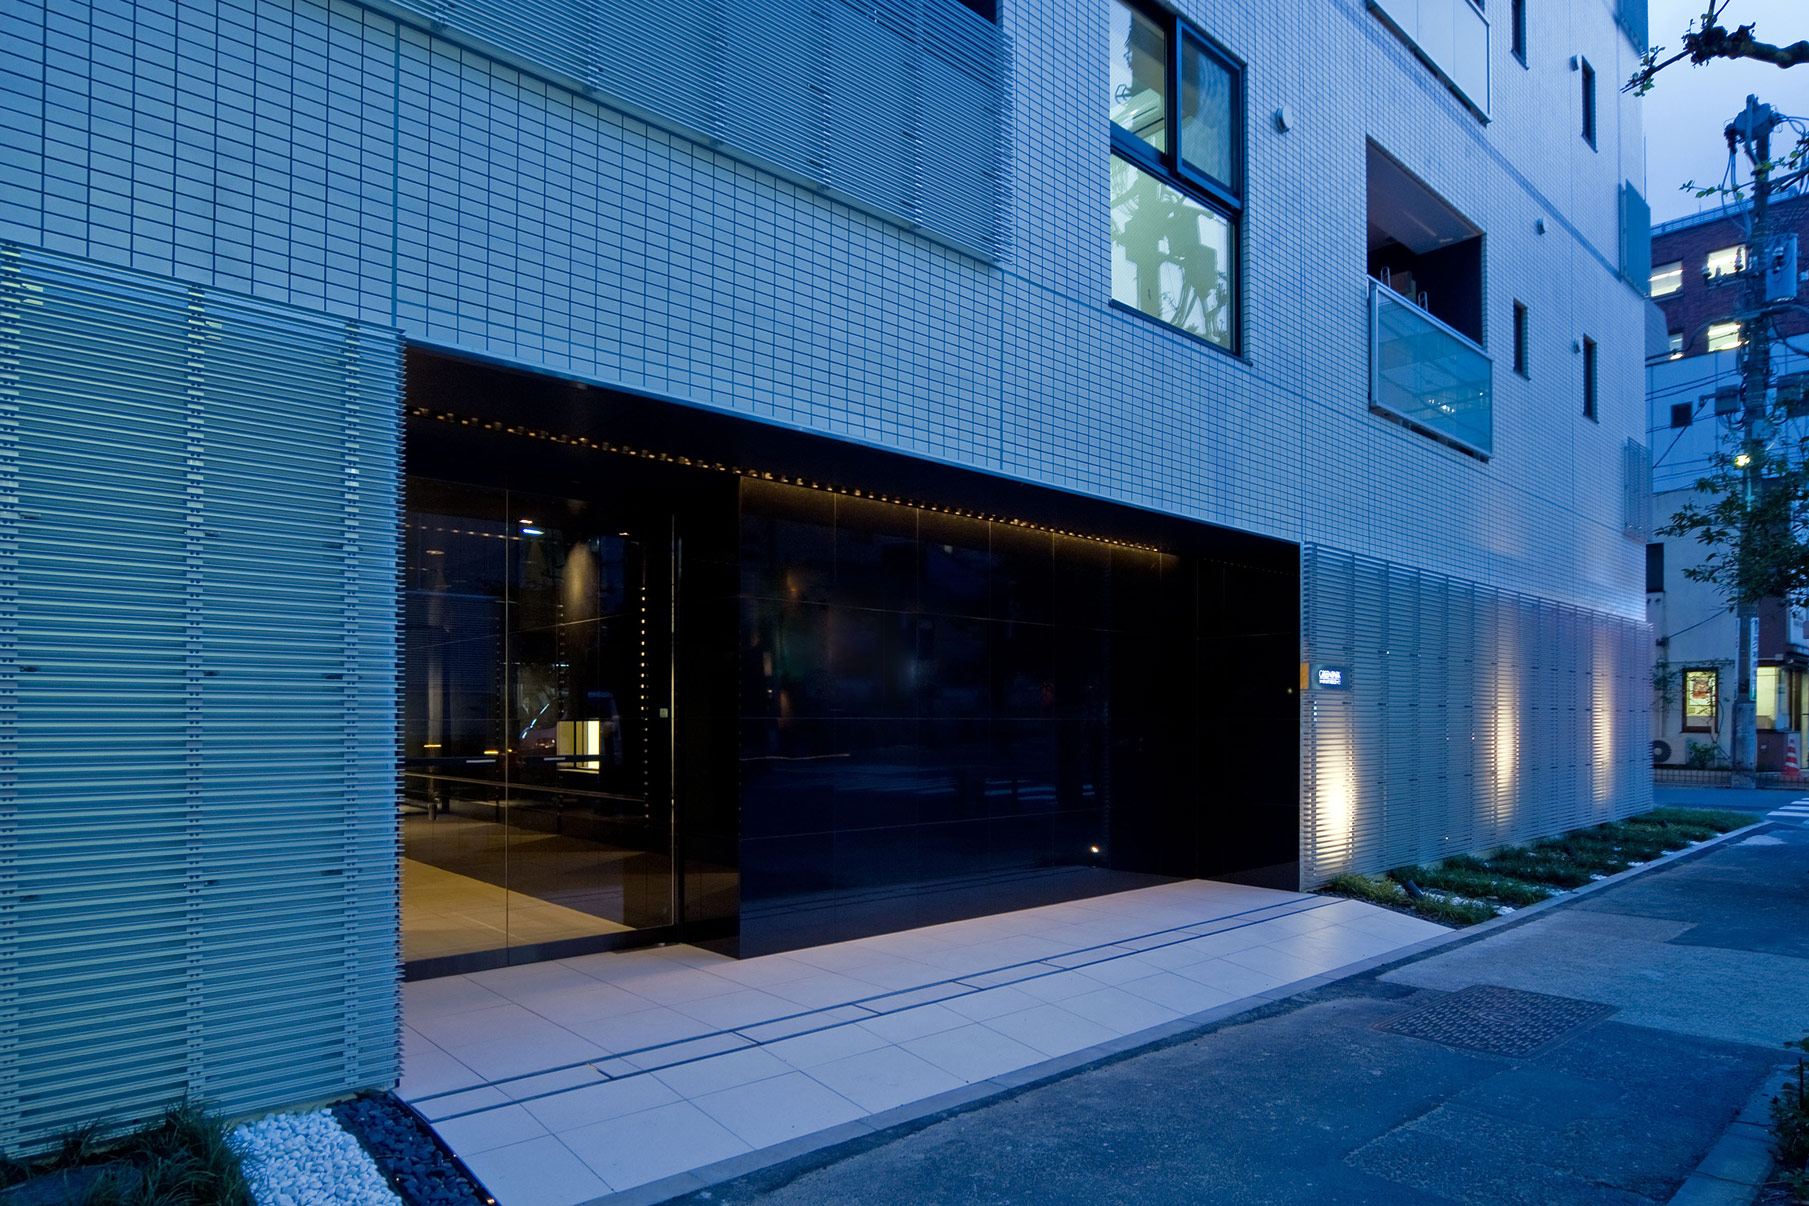 GREEN PARK 久松町 RESIDENCE | マンションギャラリー